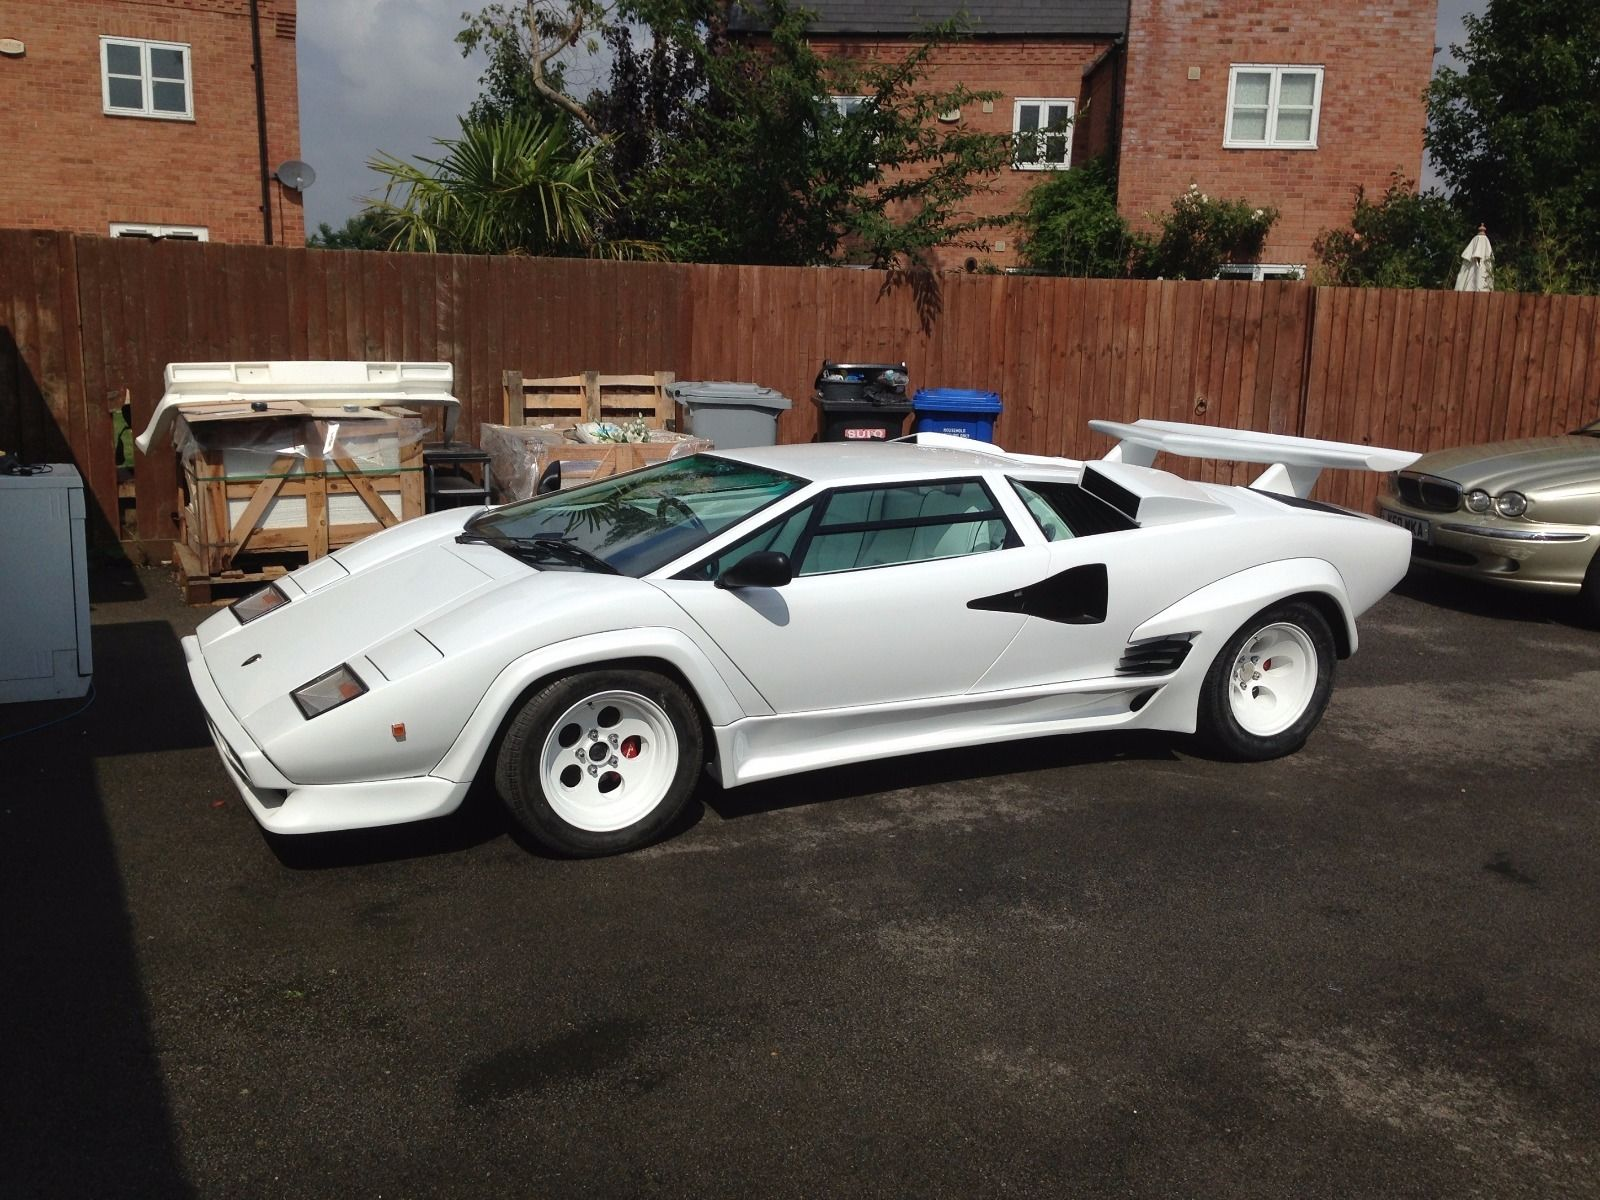 Lamborghini Countach 5000qv Replica For Sale